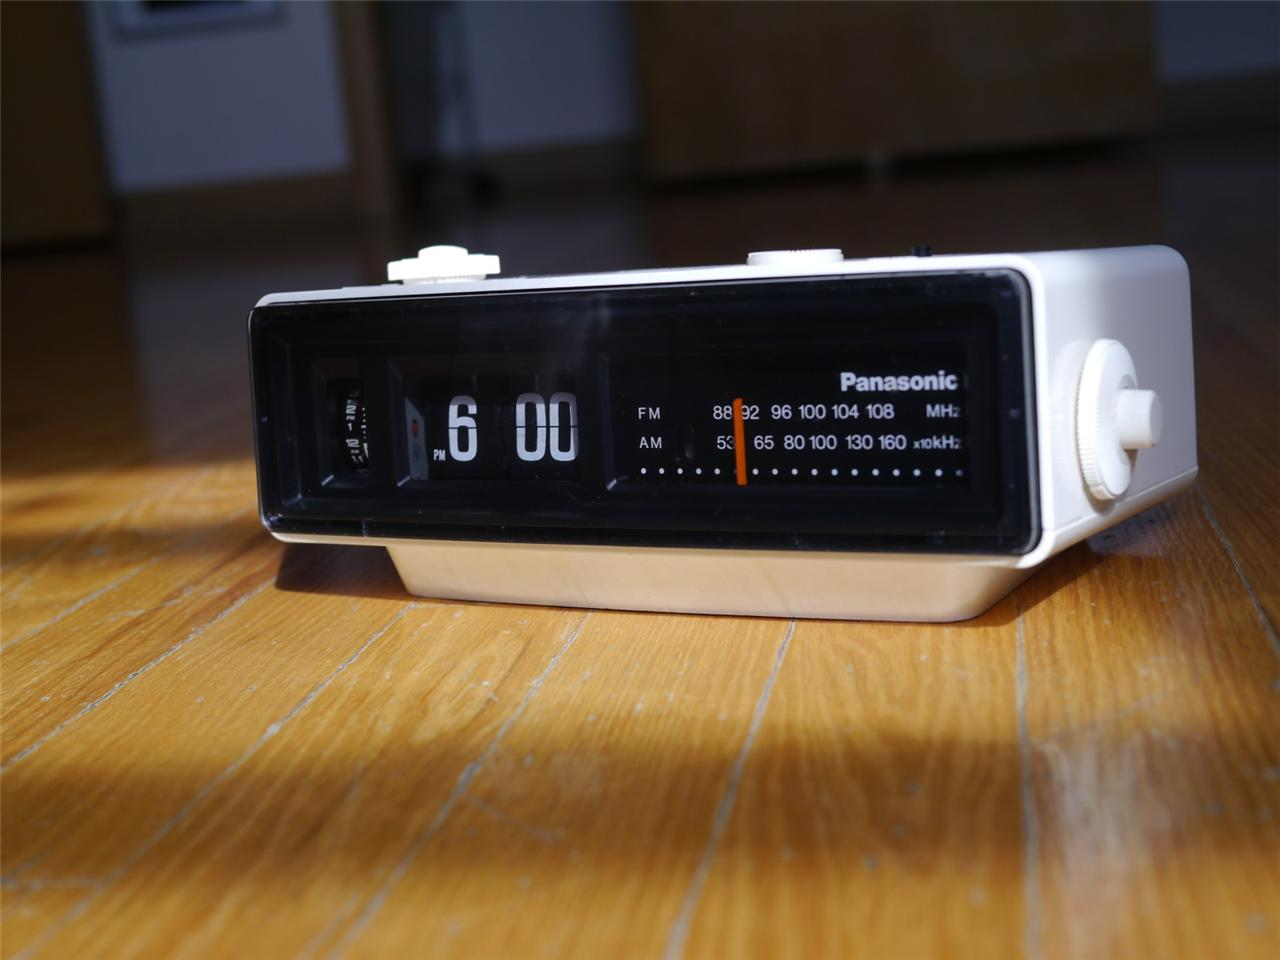 Panasonic Flip Clock Radio Mine Was Black Jorgenca Grcom